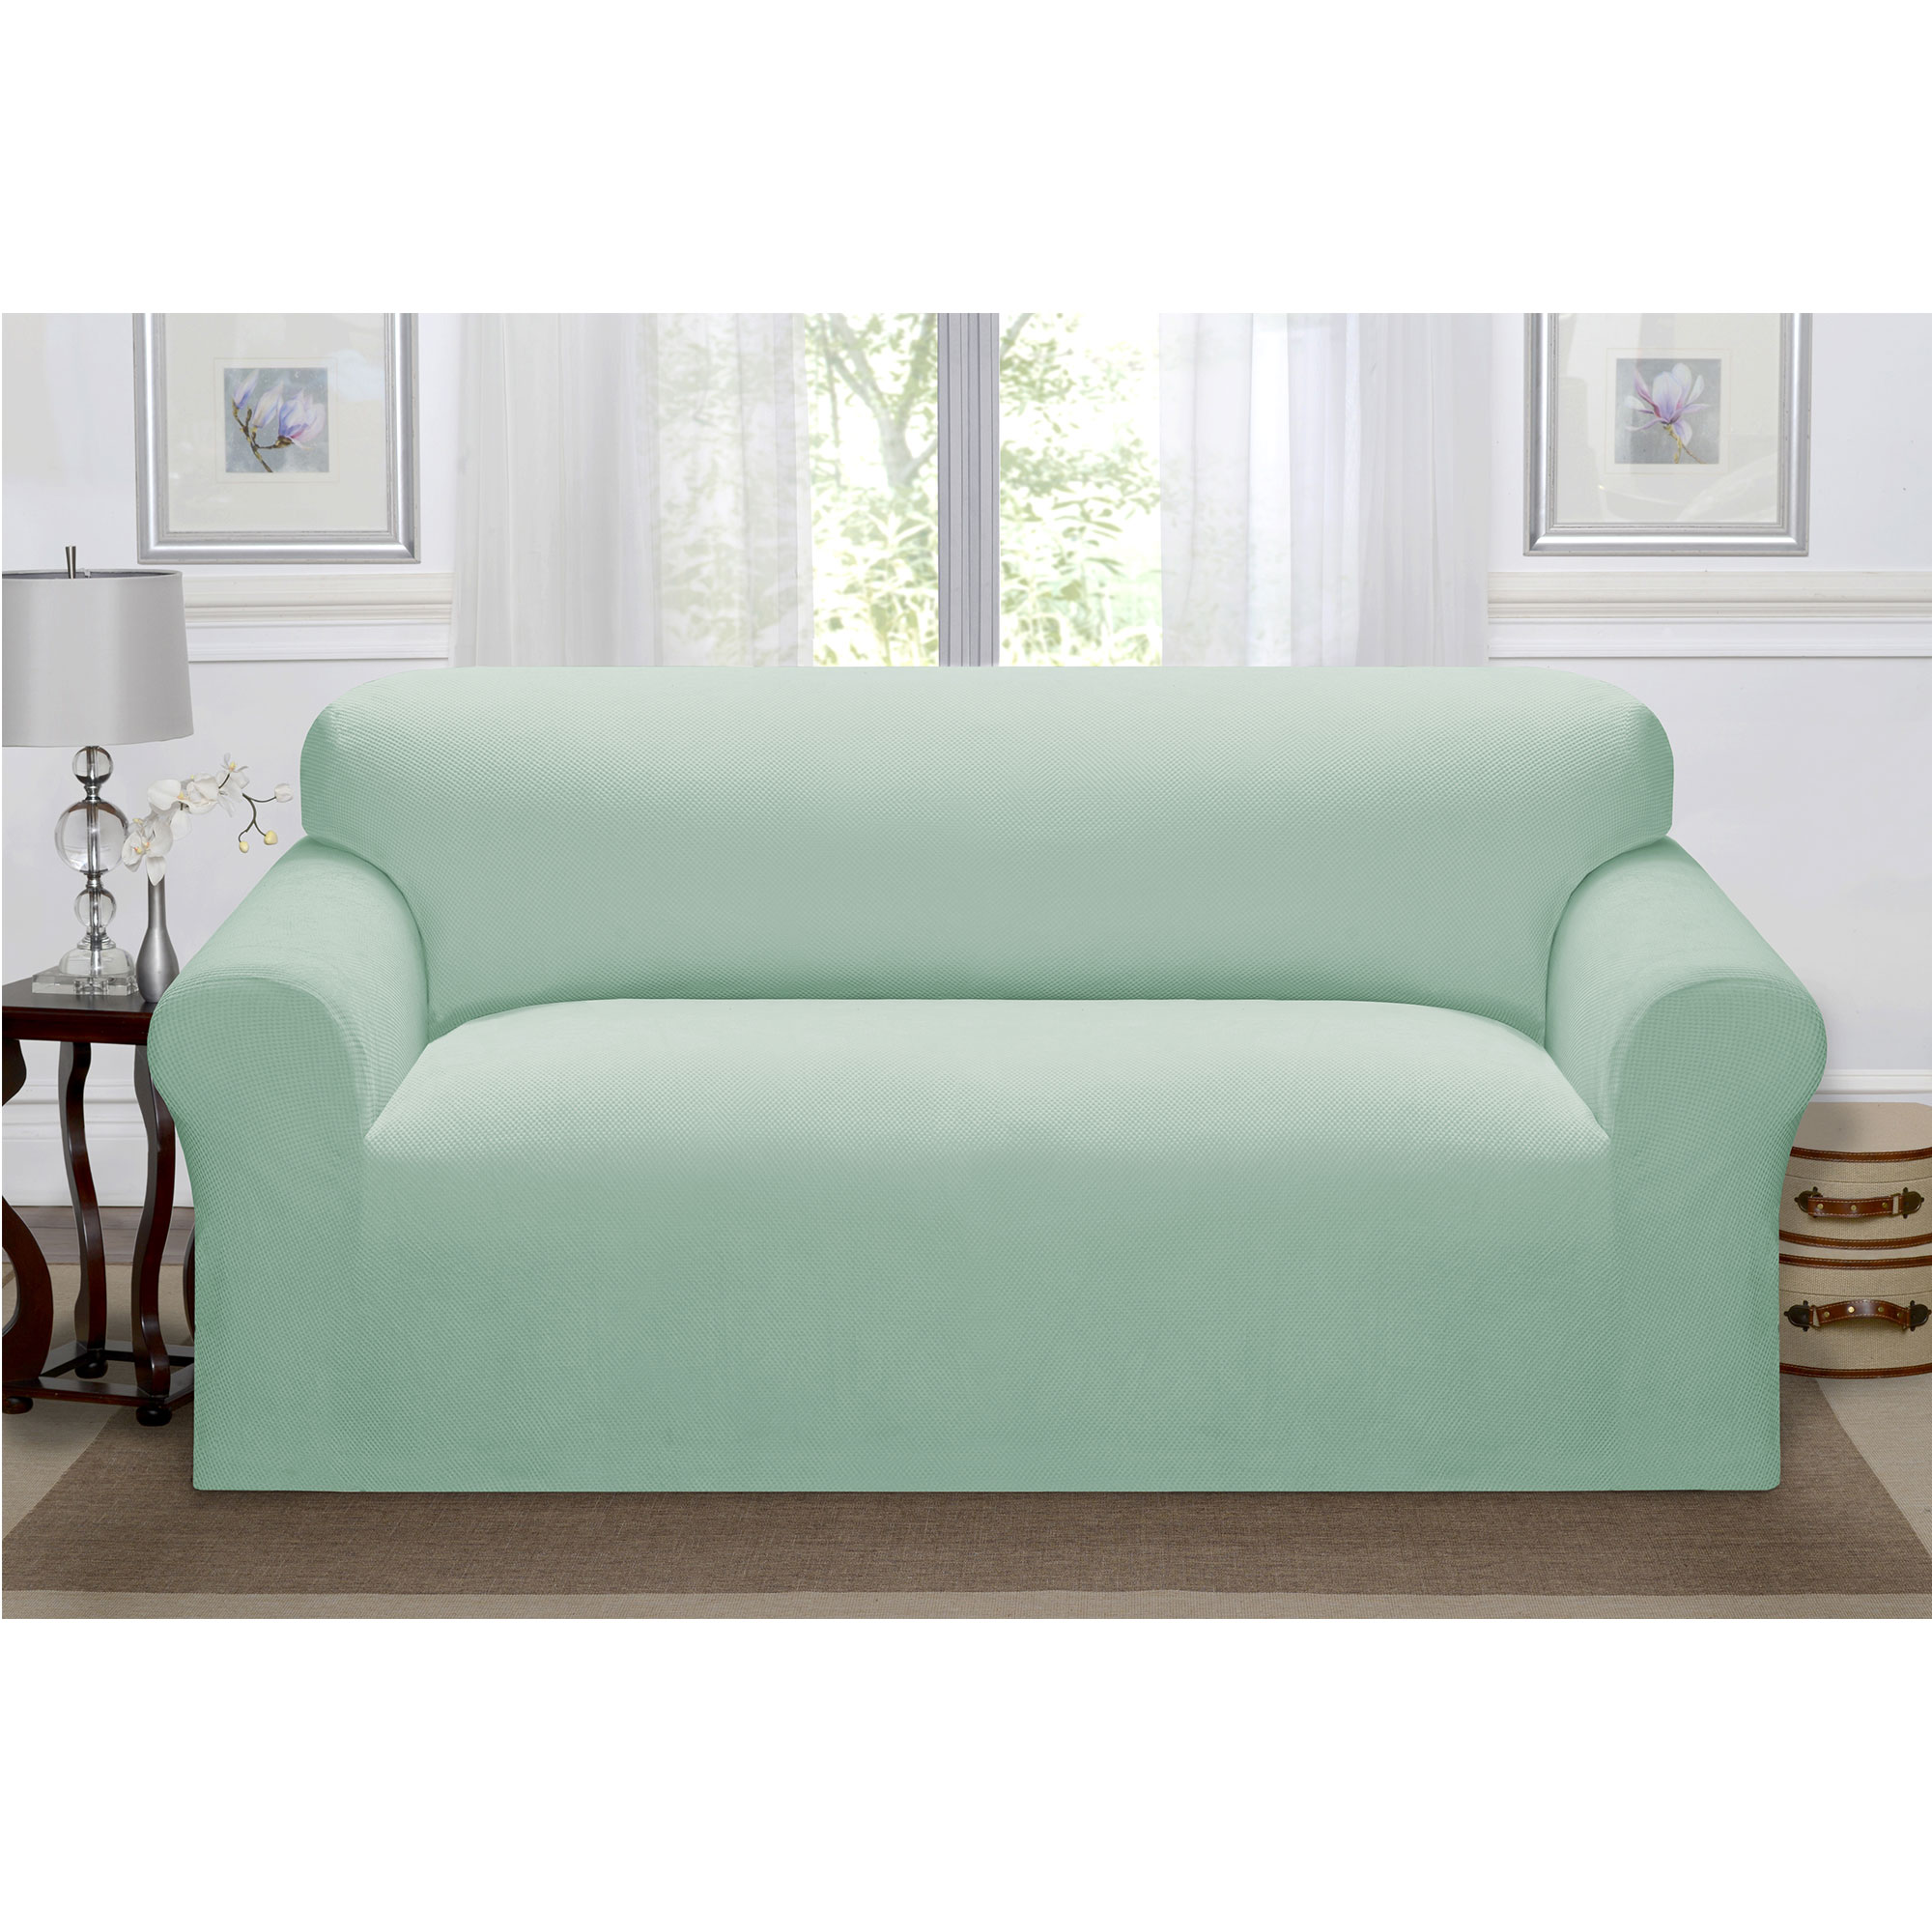 Madison Home Stretch Pique Furniture Slipcover, Soft Waffle Textured Pattern (Sofa, Seaglass)